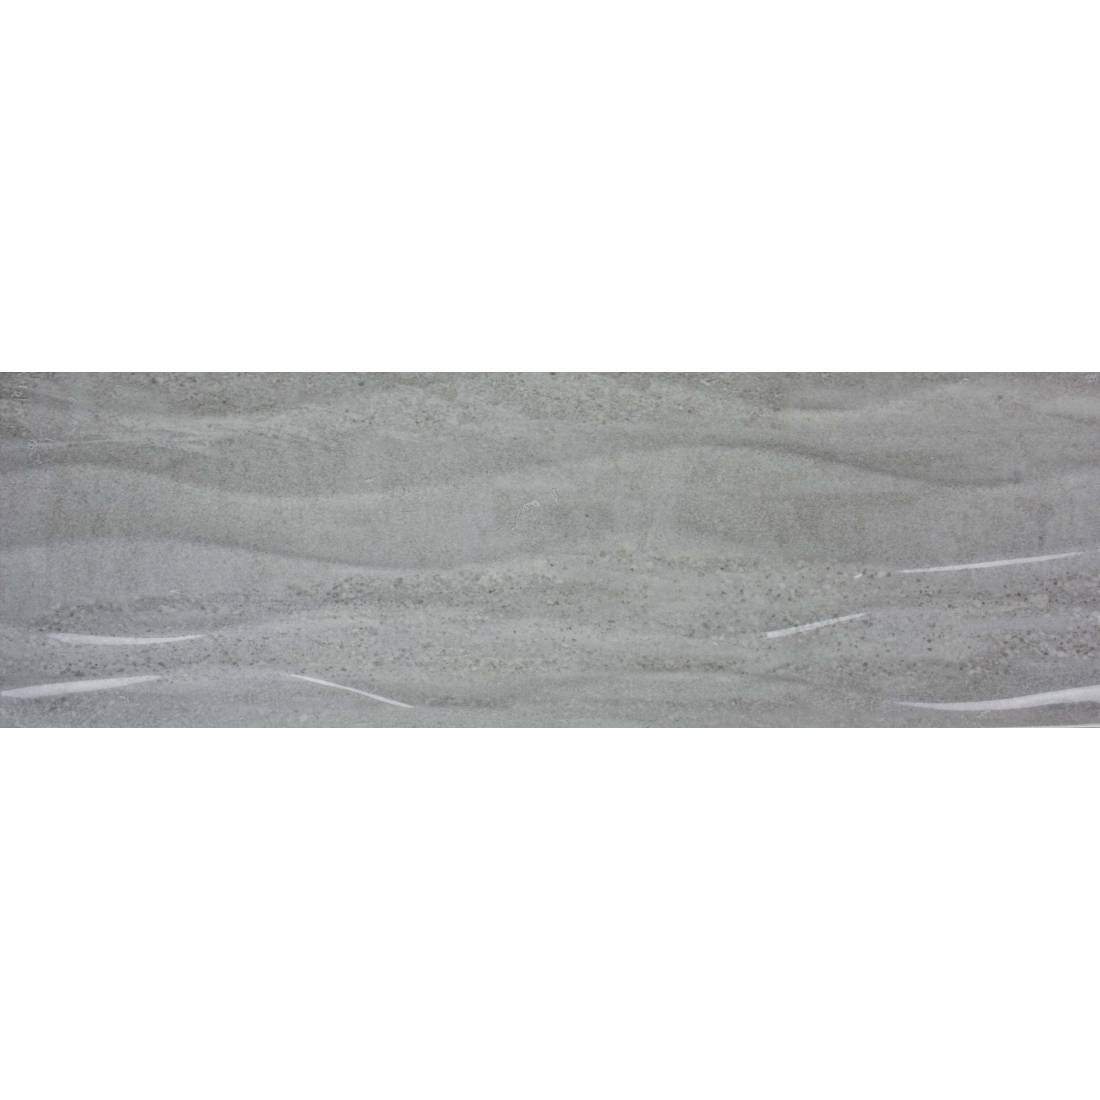 Darwin Waves 20x60 Grey Gloss 1